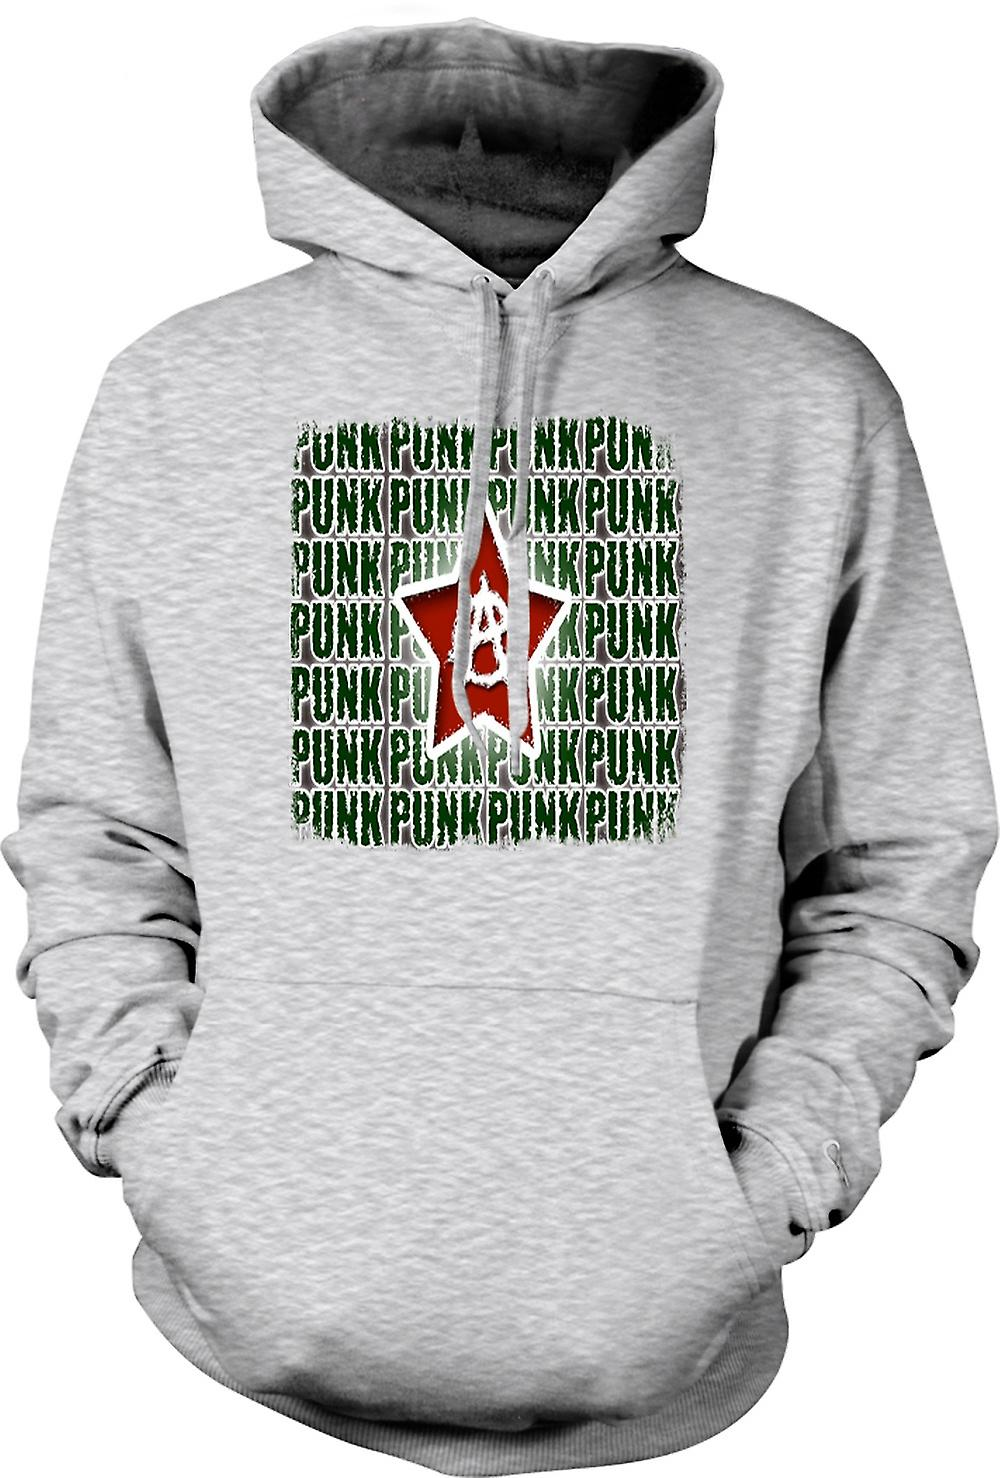 Mens Hoodie - Punk Rock Anarchy - Design